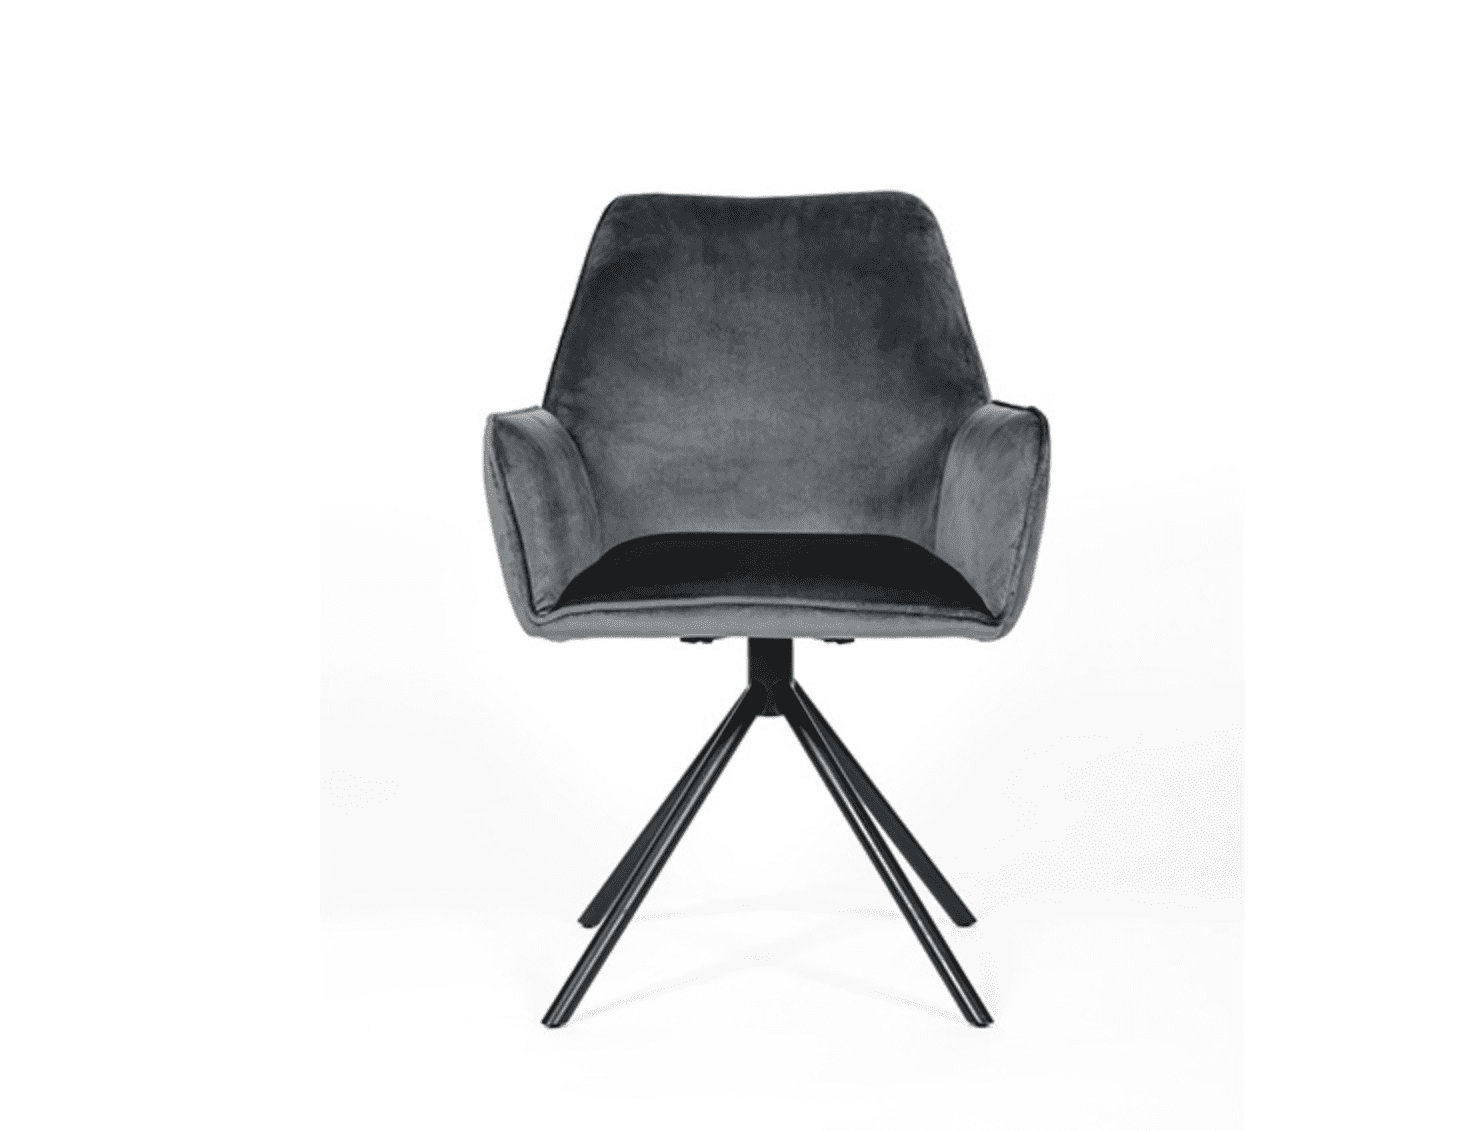 UNO chair grey